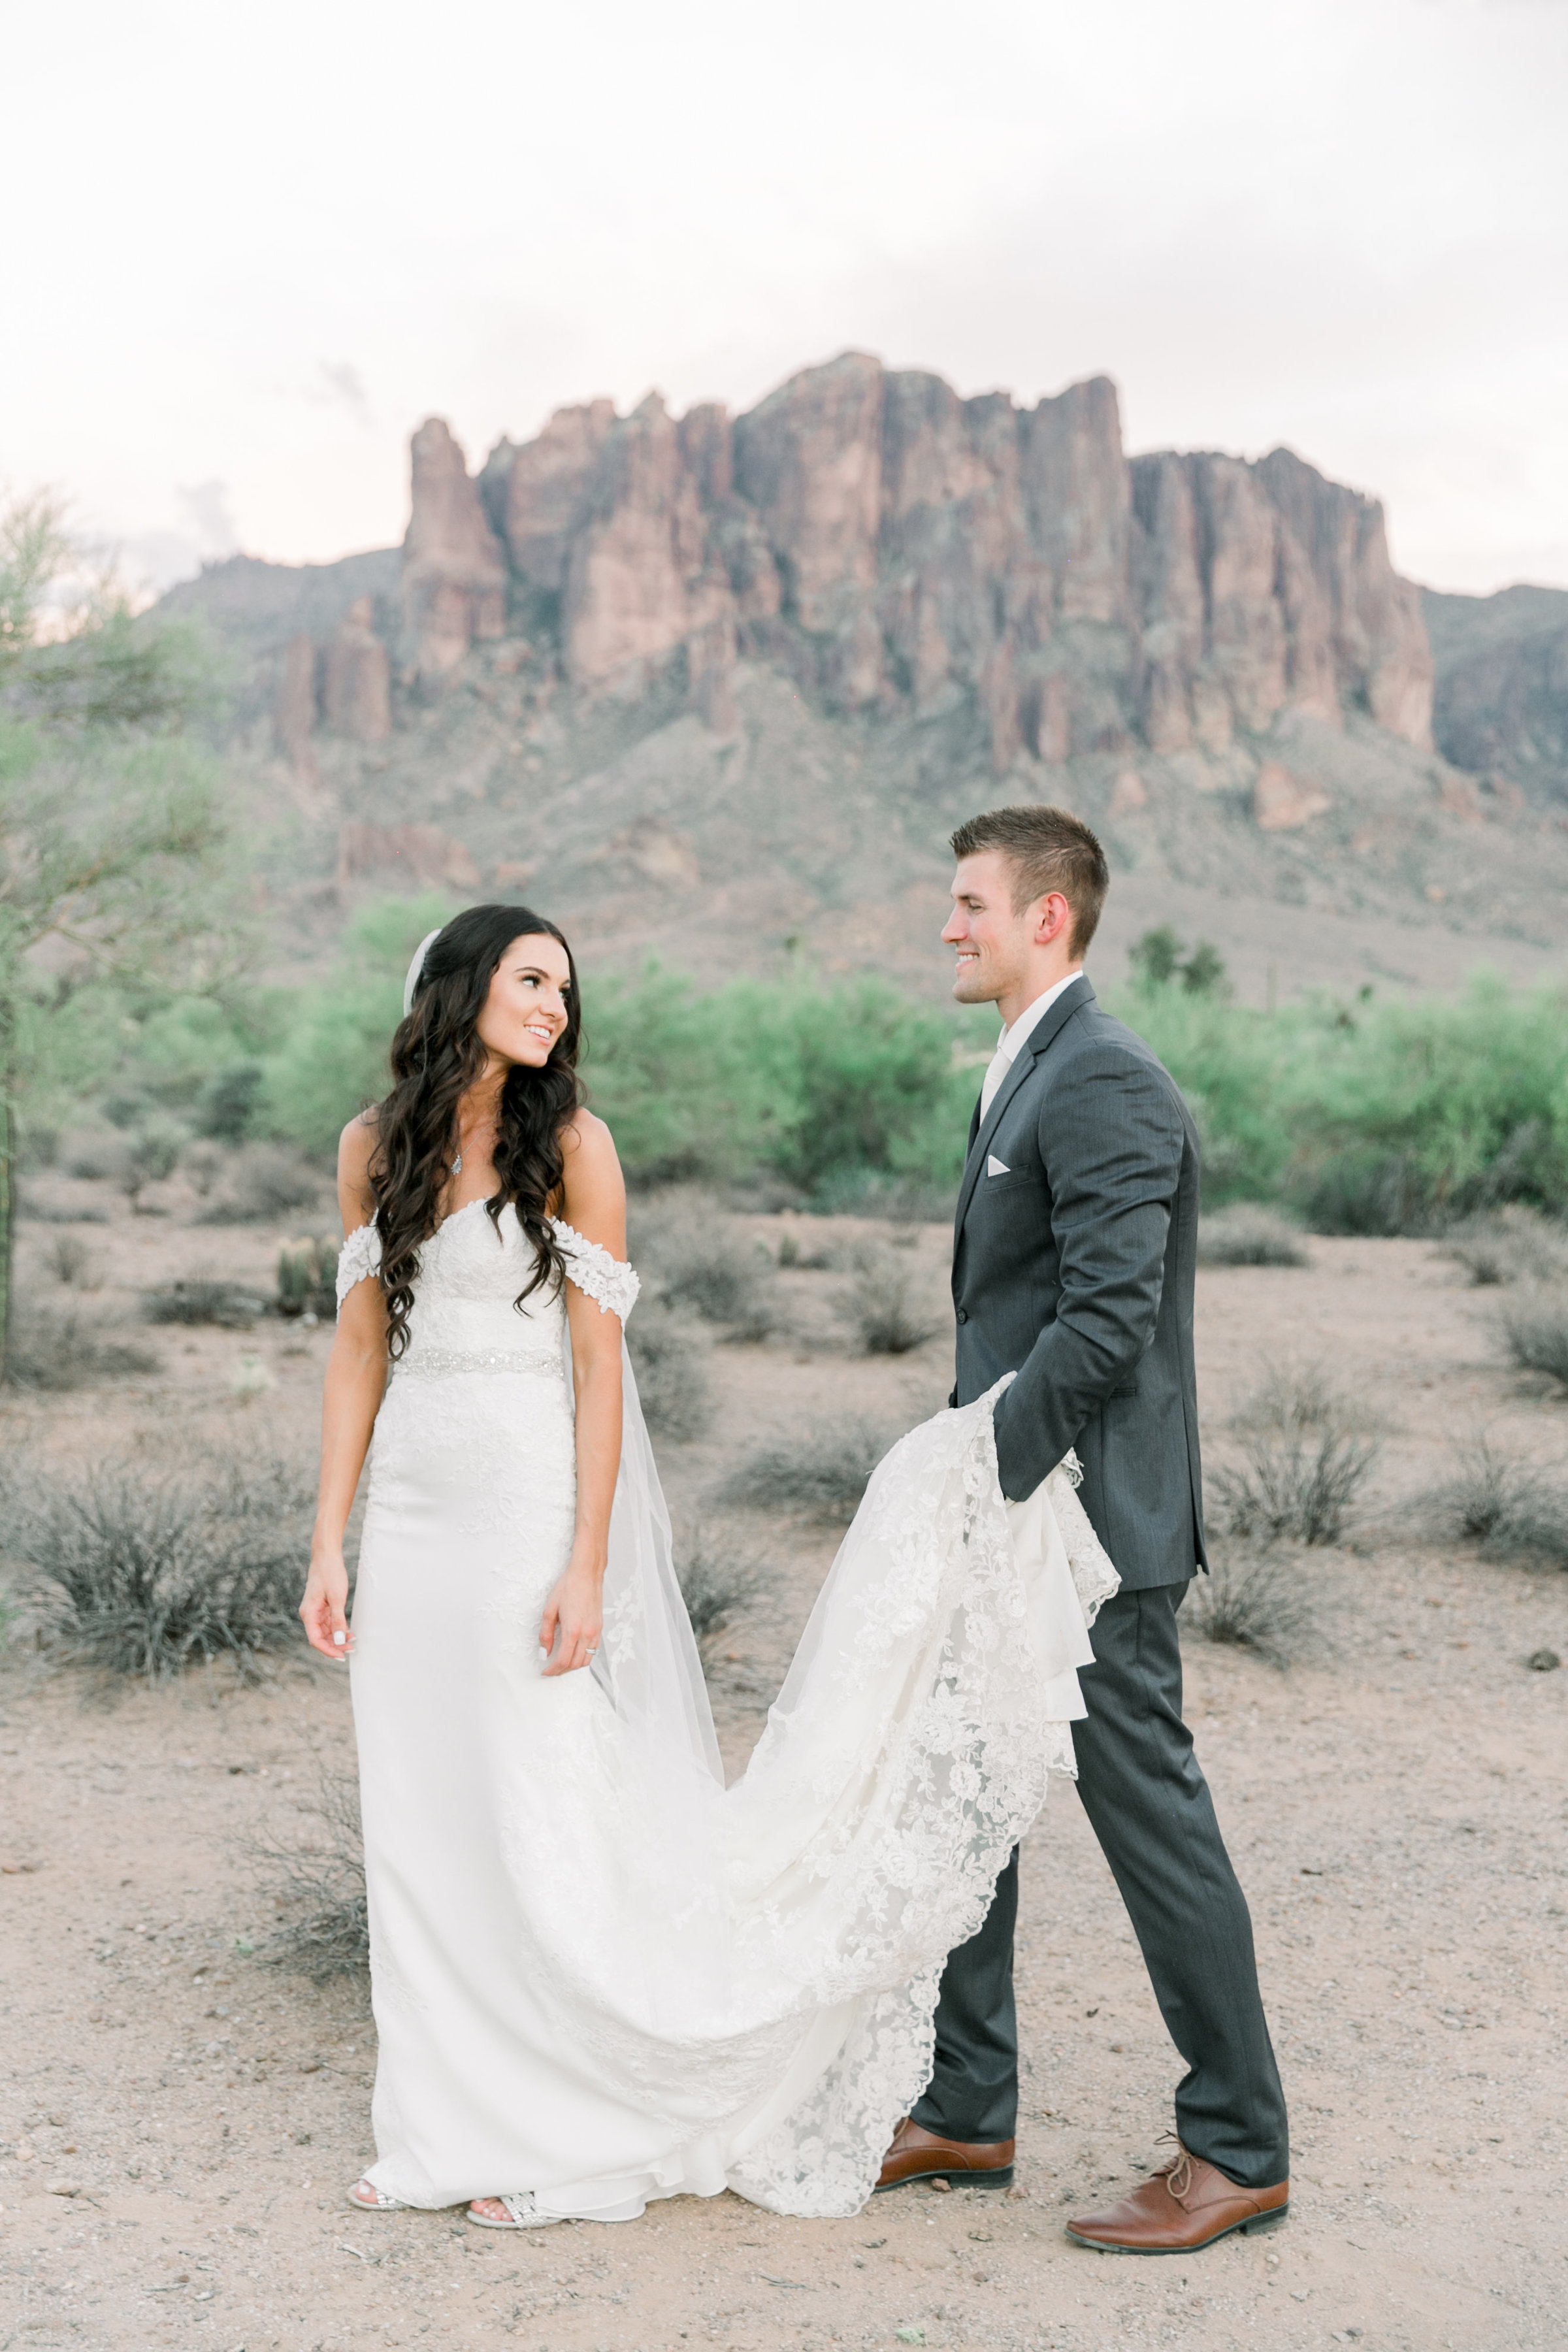 Karlie Colleen Photography - Arizona Wedding - The Paseo Venue - Jackie & Ryan -716